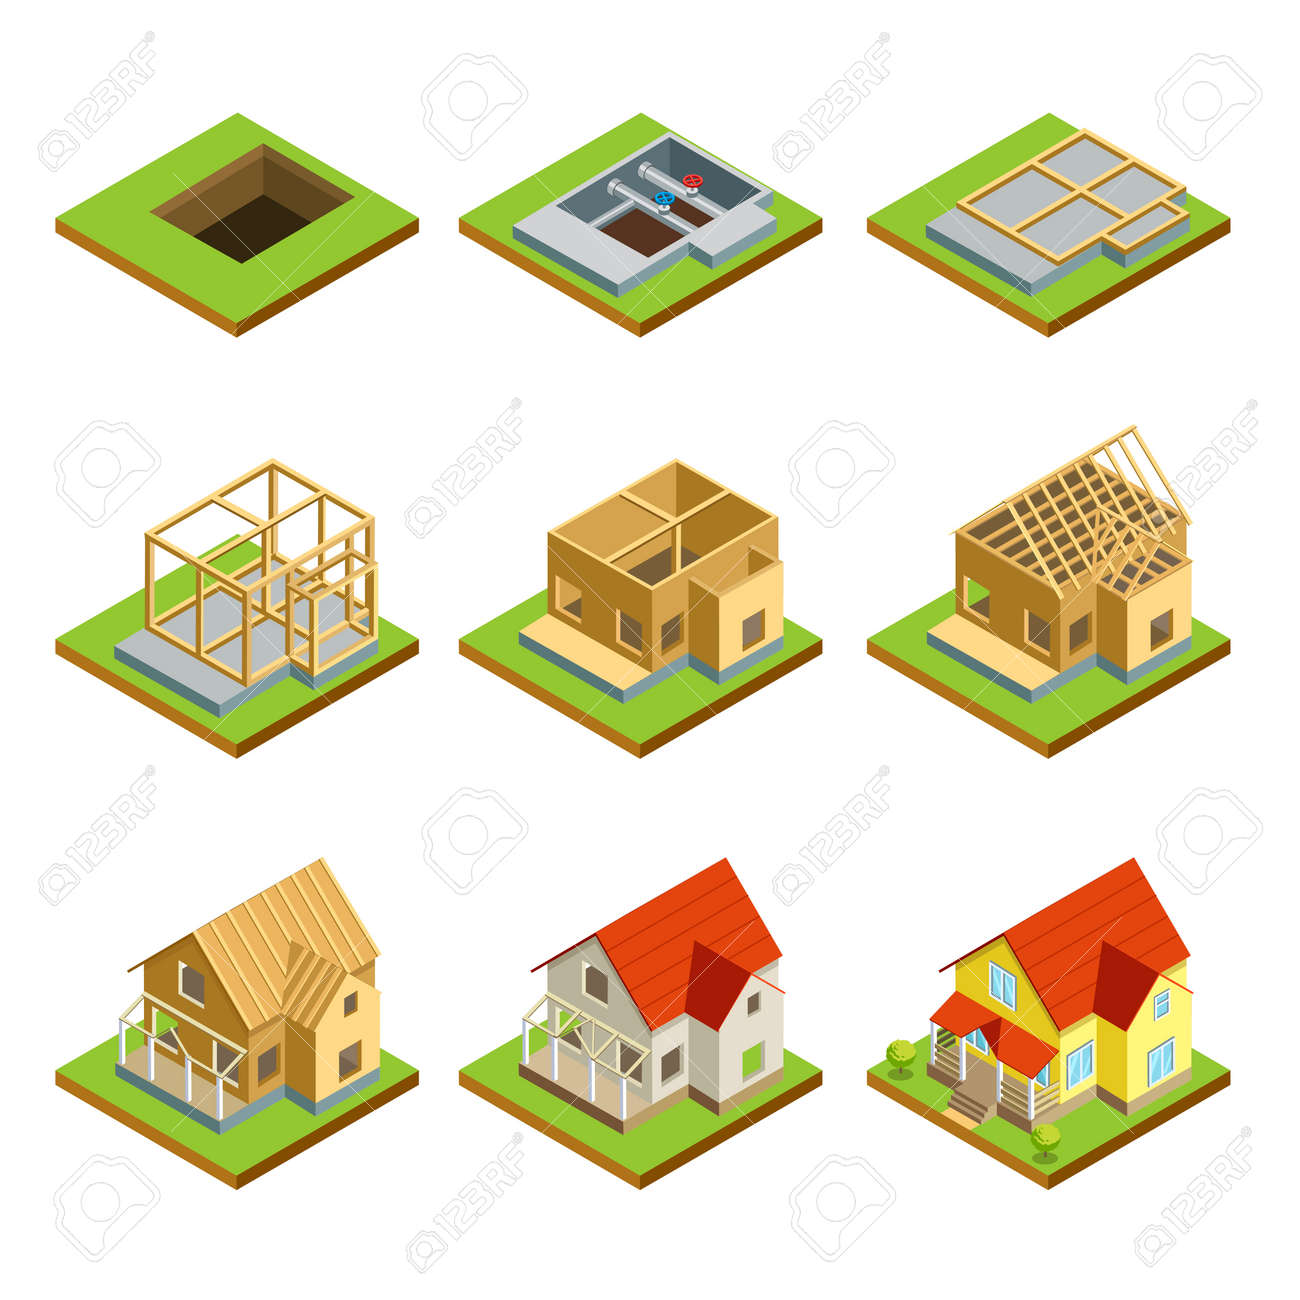 Charming Stages Of Countryside House Construction Isometric 3D Set Stock Vector    90235655